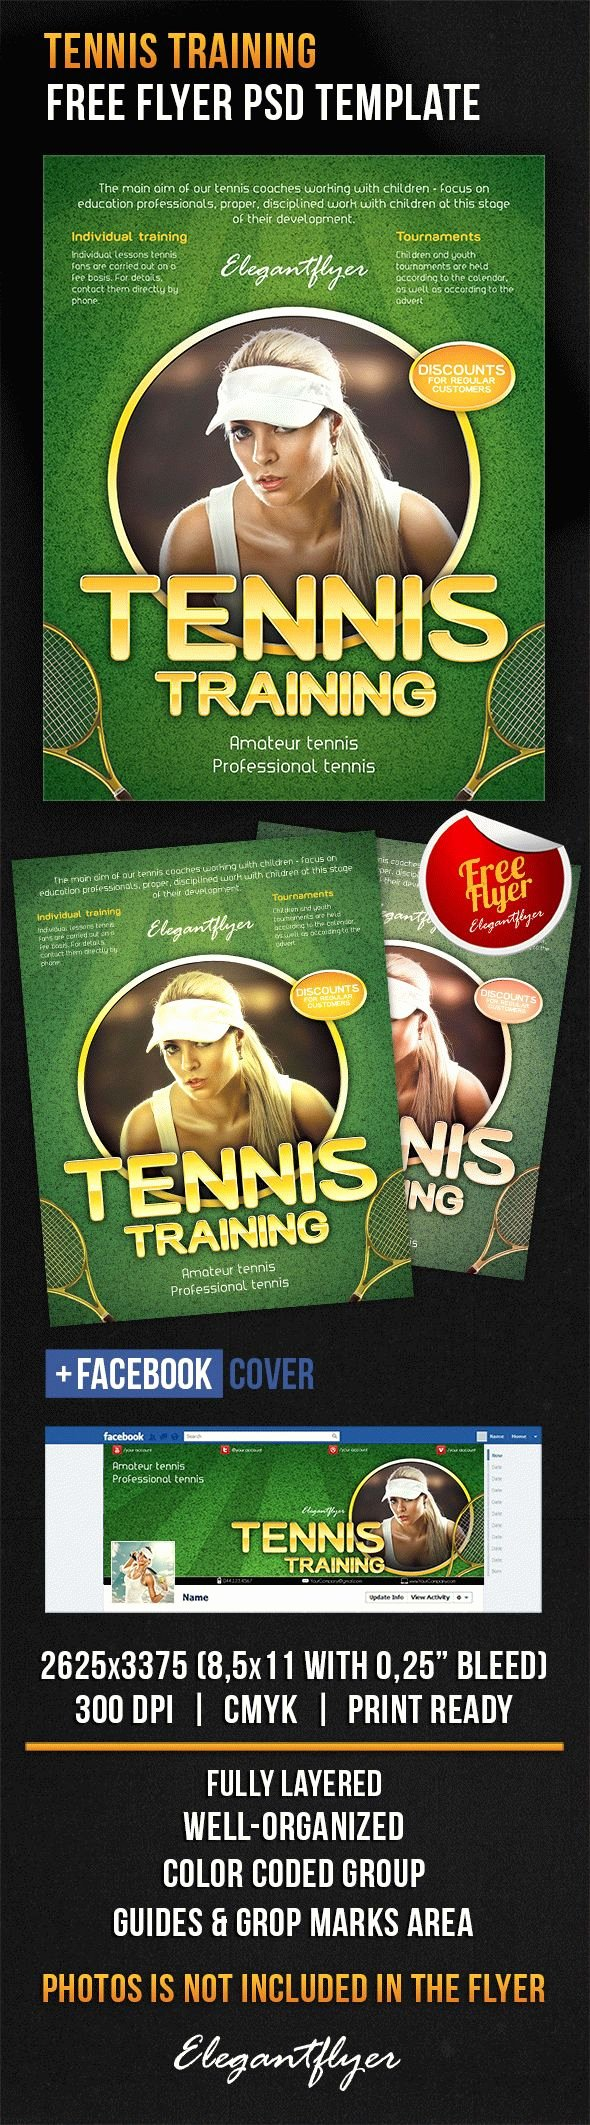 Training Flyer Template Free Lovely Tennis Training – Free Flyer Psd Template – by Elegantflyer